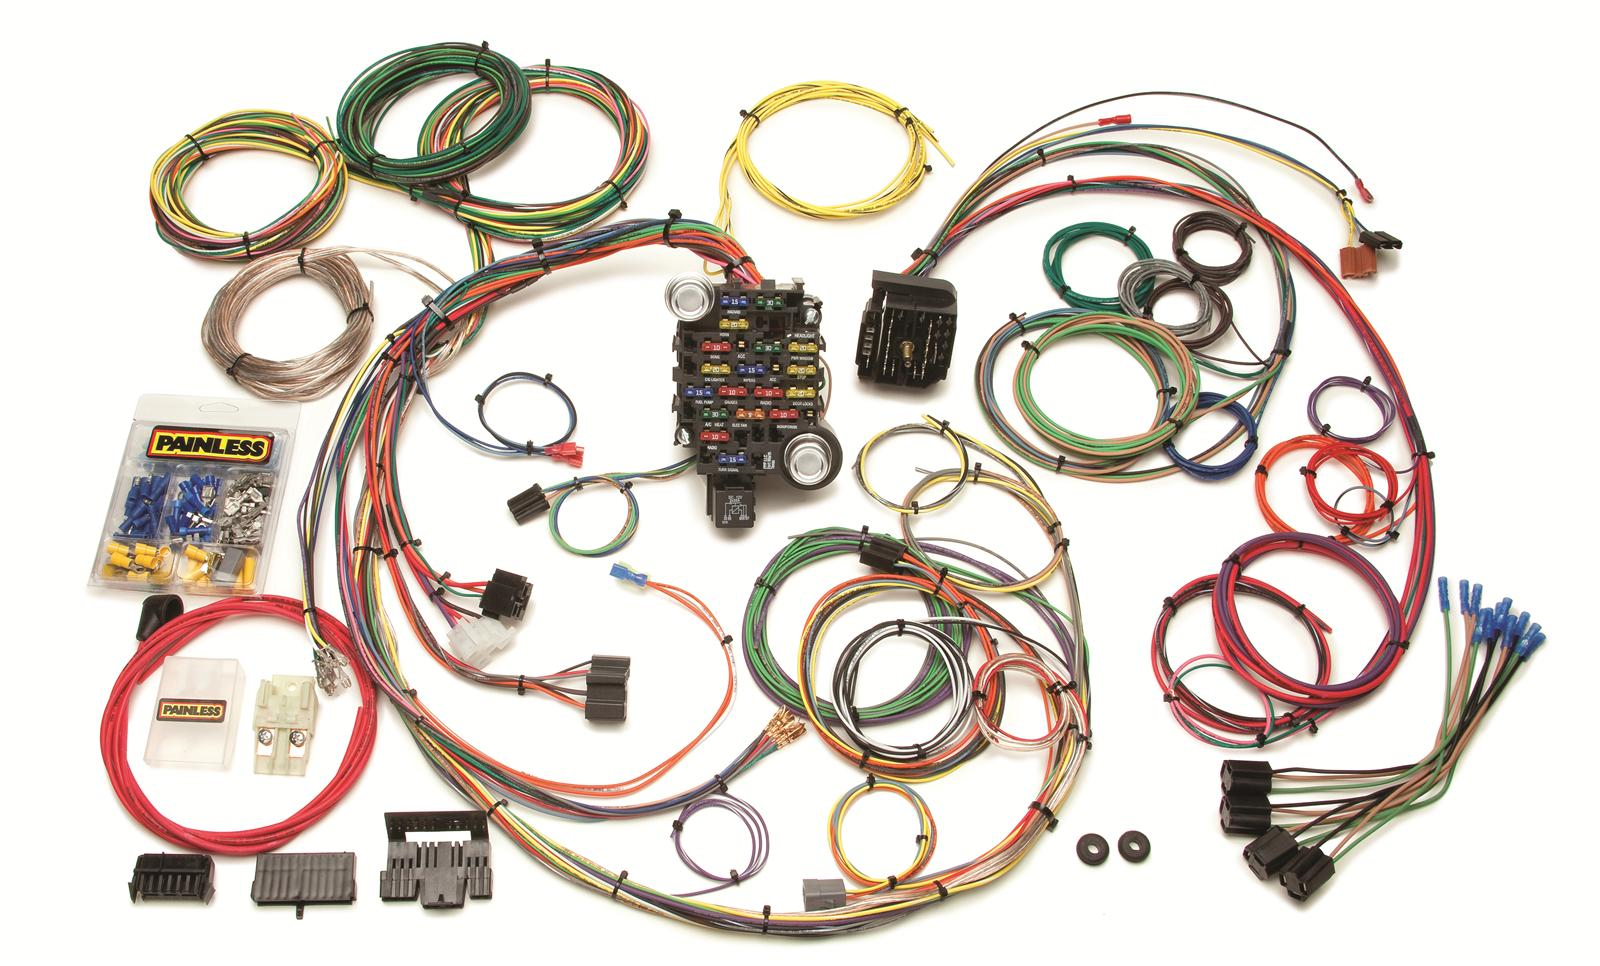 Painless Performance 25-Circuit 1969-74 GM Muscle Car Harnesses 20102 -  Free Shipping on Orders Over $49 at Summit Racing